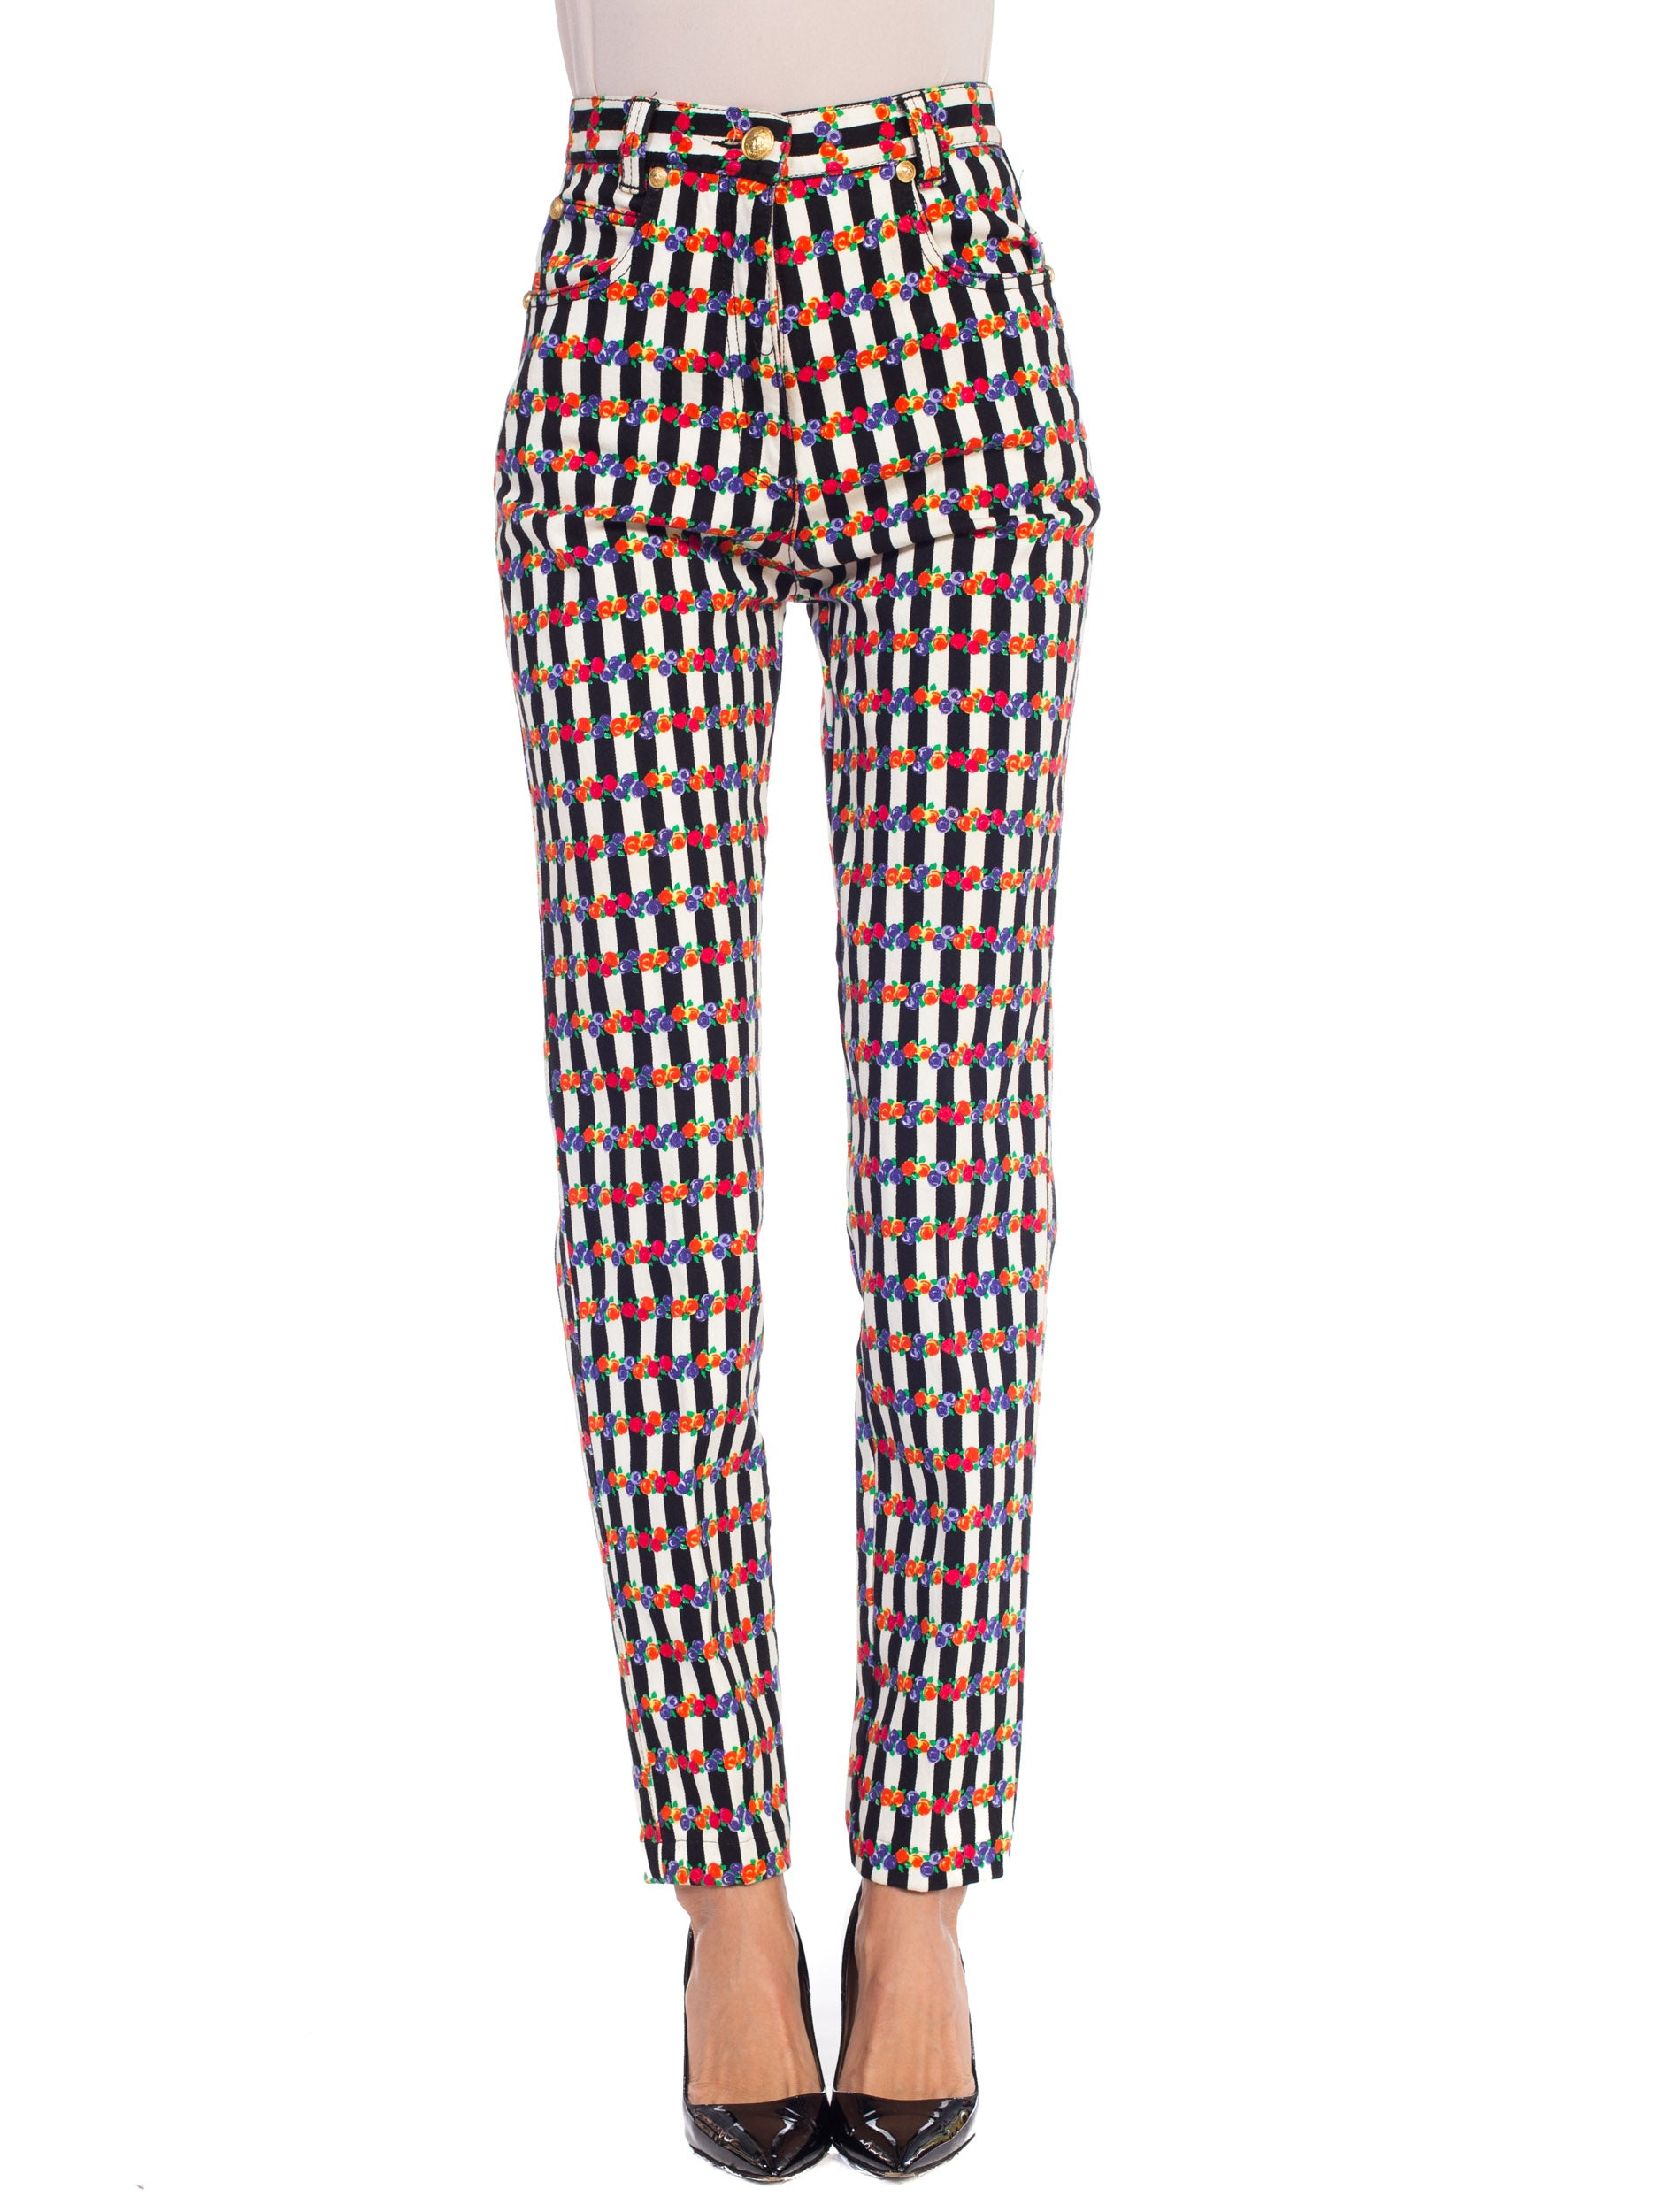 1990S GIANNI VERSACE  Floral Striped Jeans Pants